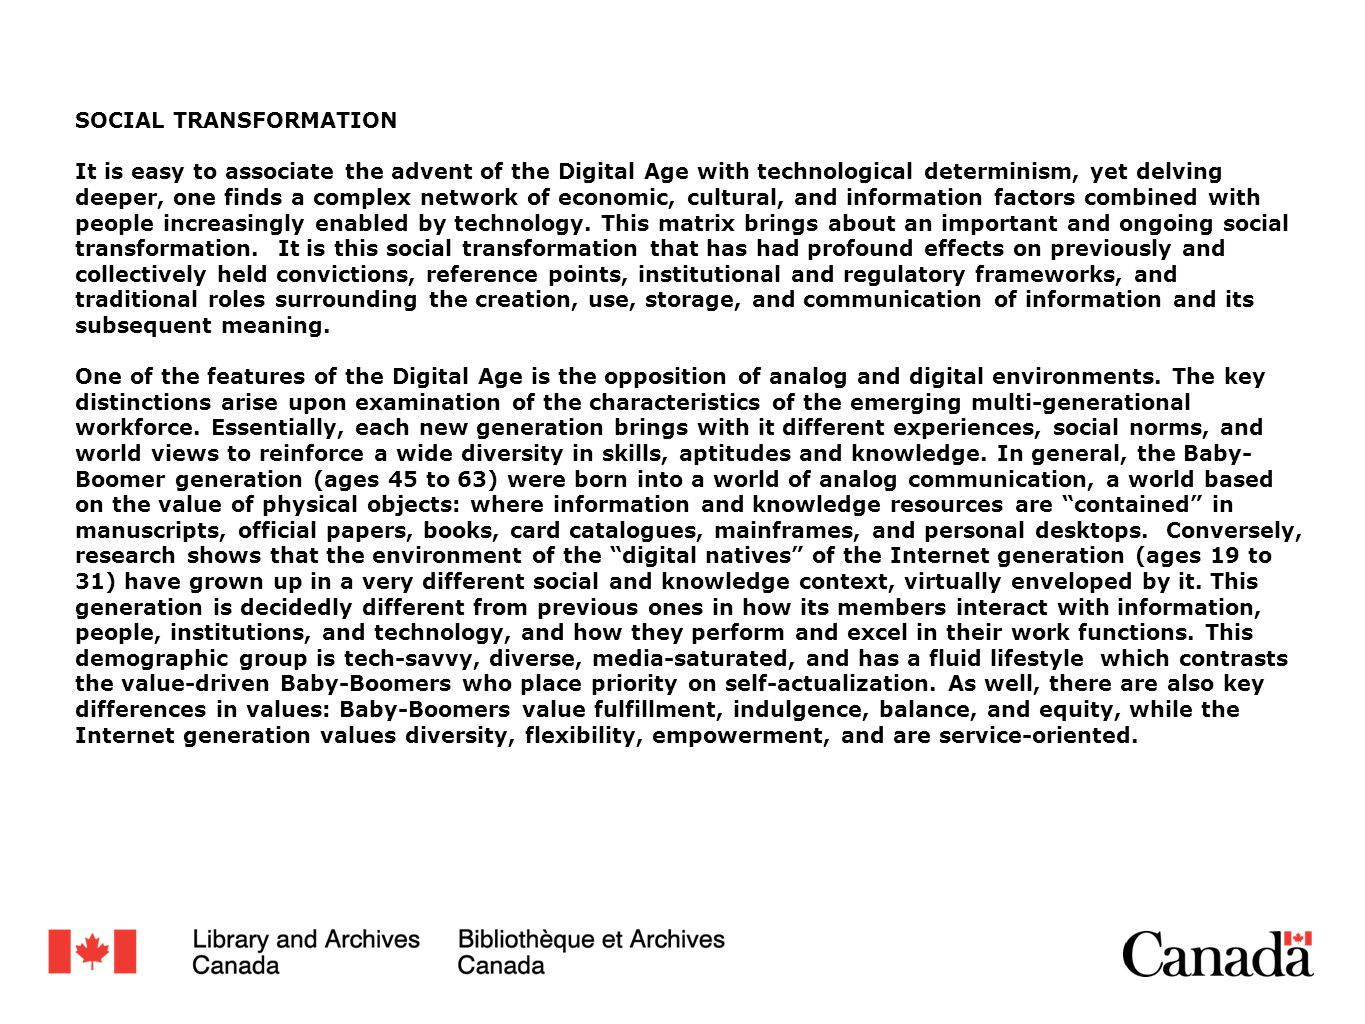 SOCIAL TRANSFORMATION It is easy to associate the advent of the Digital Age with technological determinism, yet delving deeper, one finds a complex ne